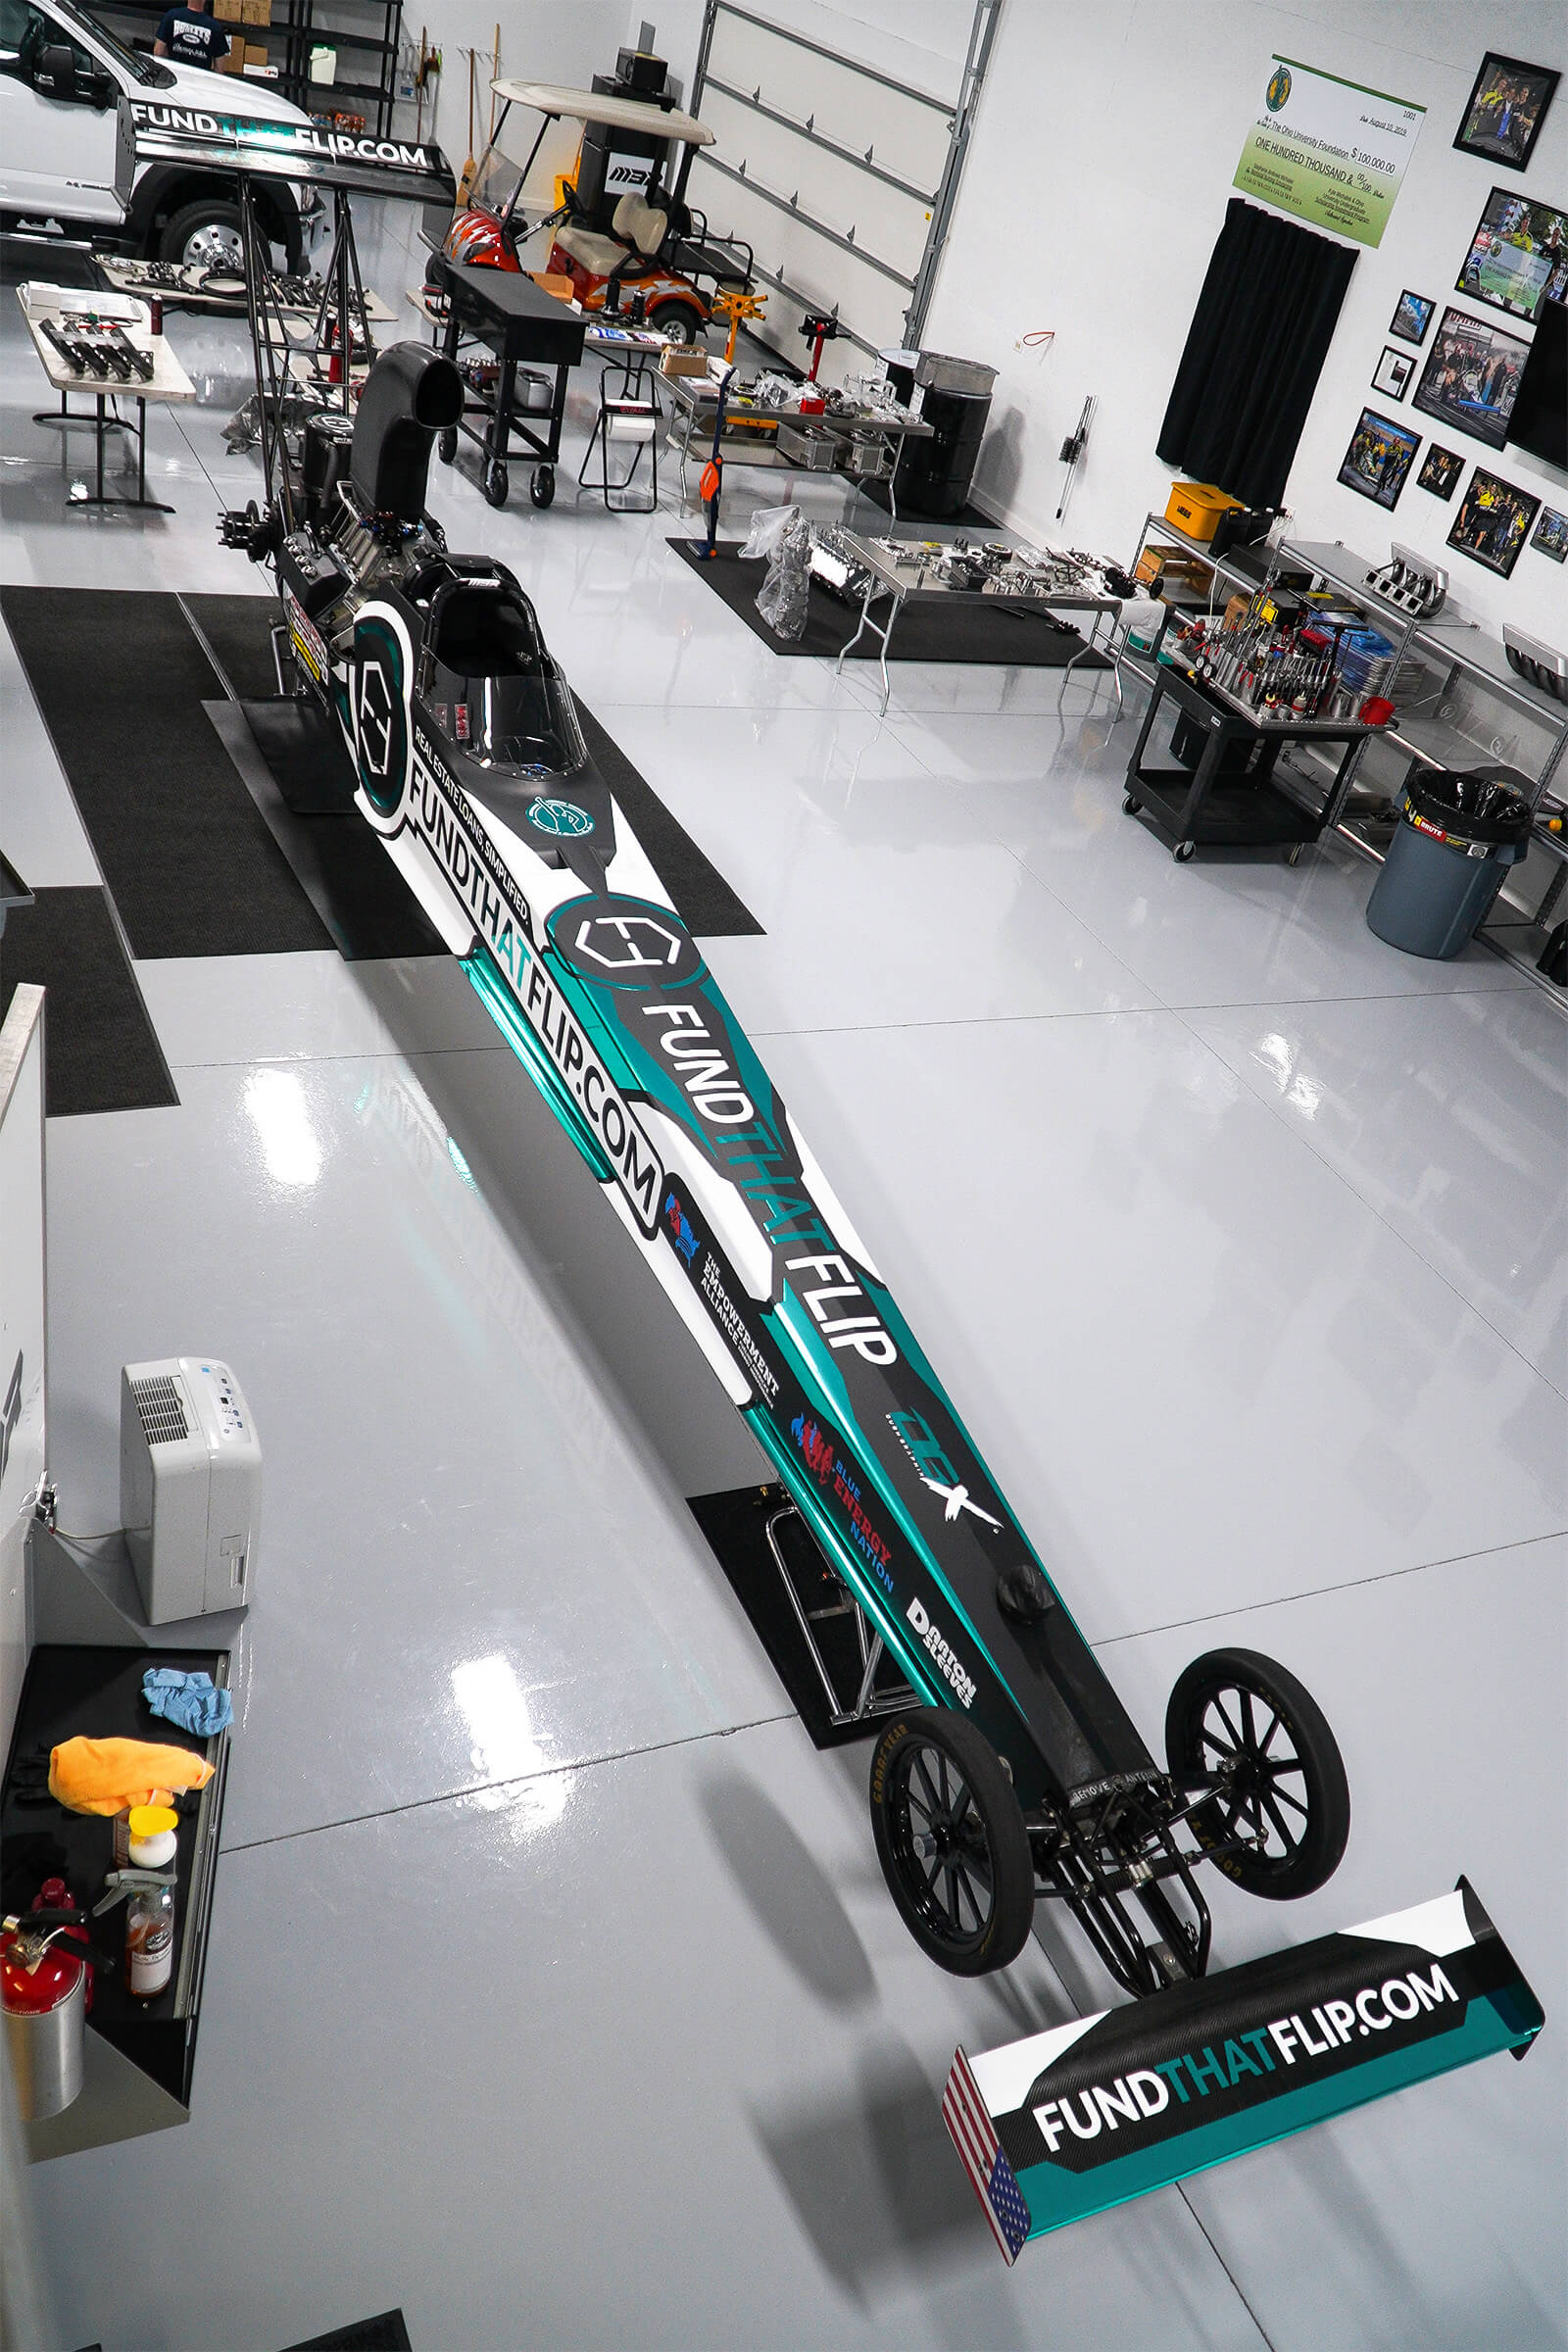 The Fund That Flip A/fuel dragster will compete in Indianapolis, Indiana during the weekend of September 4-6, and in Charlotte, North Carolina during the weekend of September 18-20.